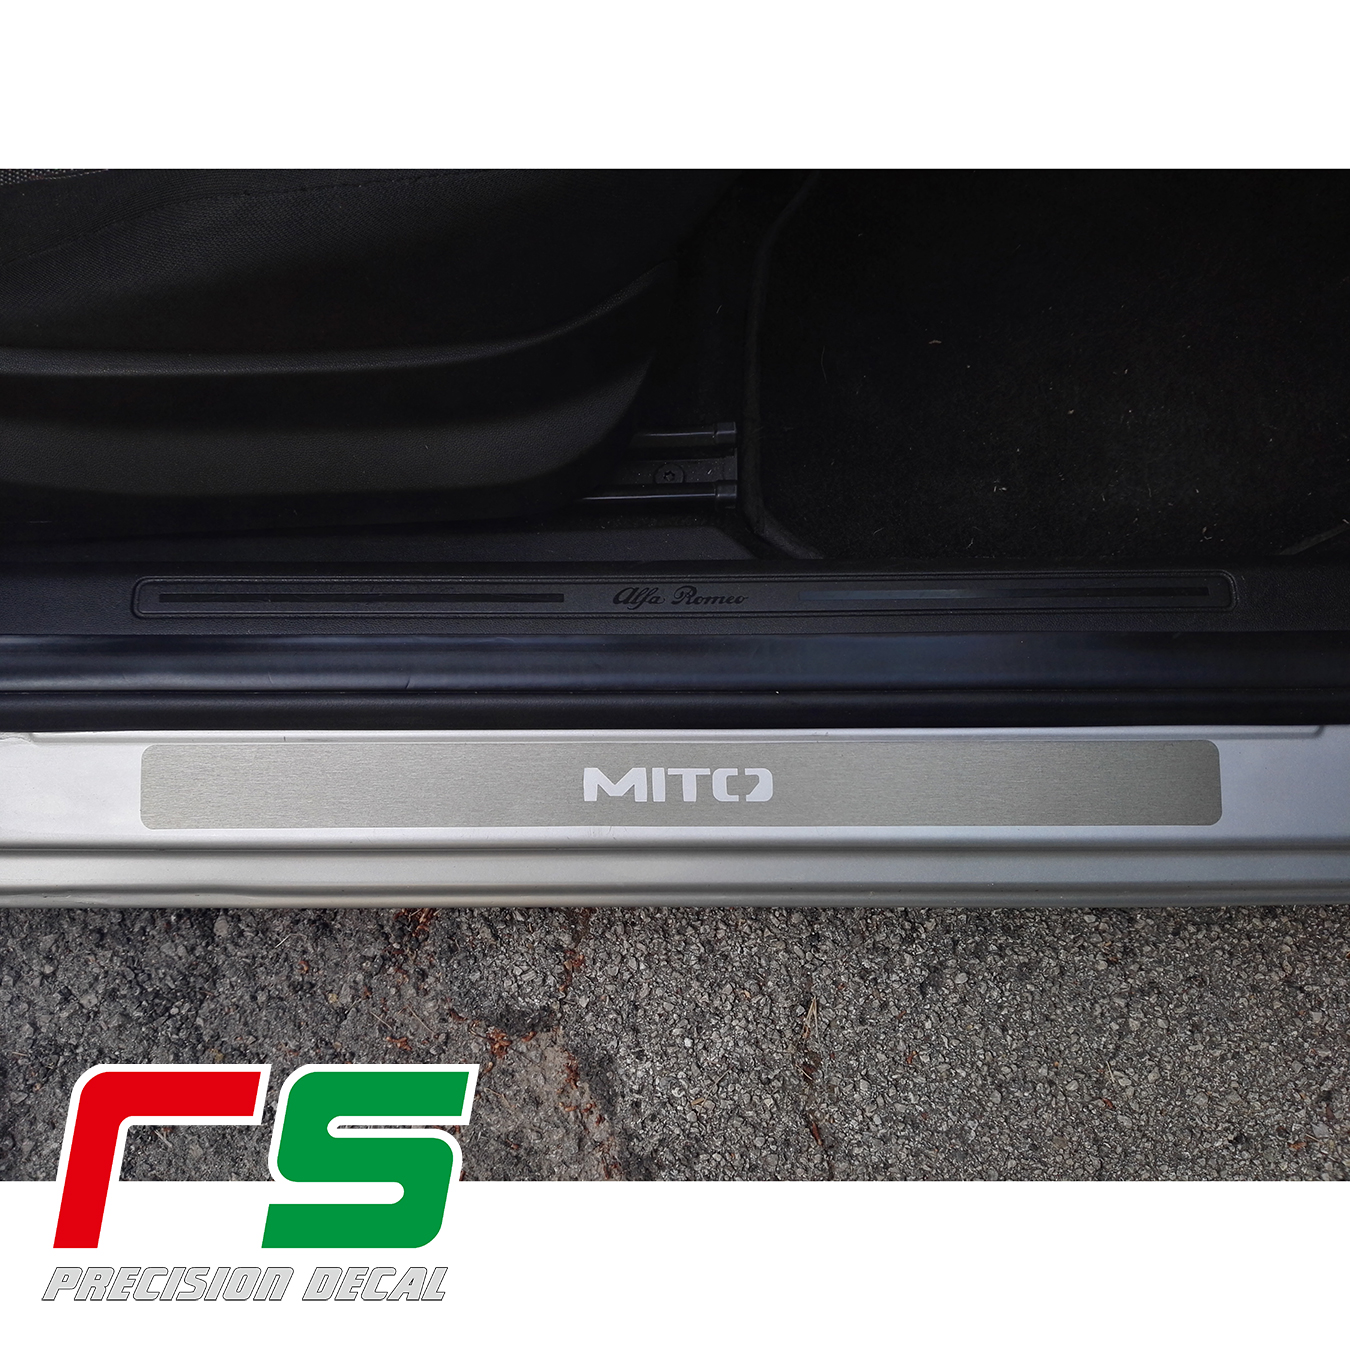 461/5000 alfa romeo mito door sill guards protect under-door tuning